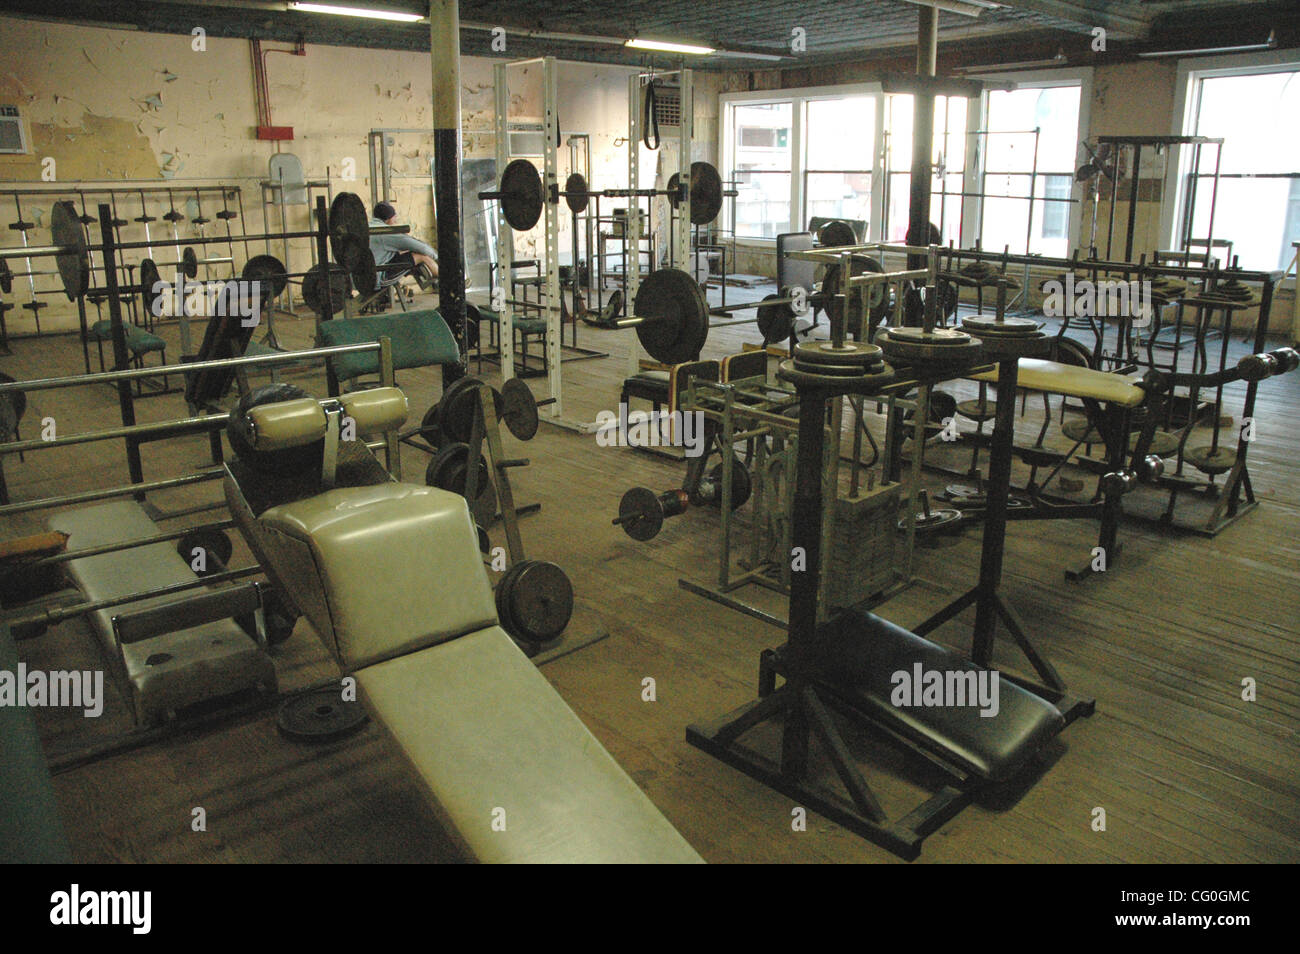 Jun 28 2007 dallas tx usa it is easy to see why dougs gym